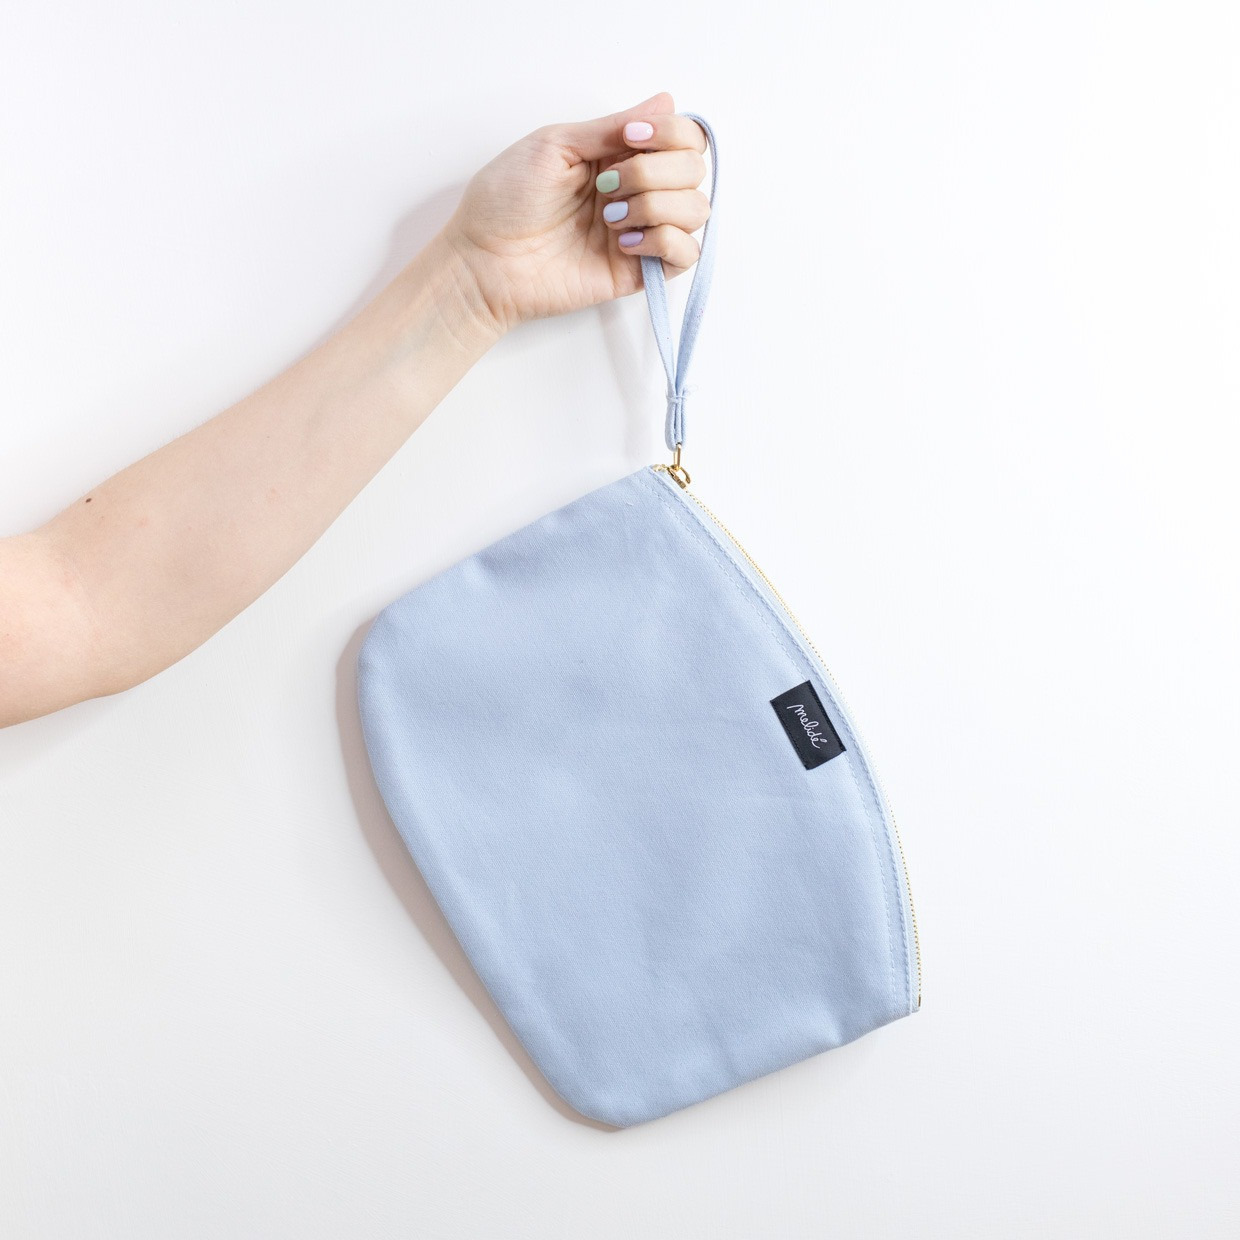 The ZIPPED POUCH L - Try Again